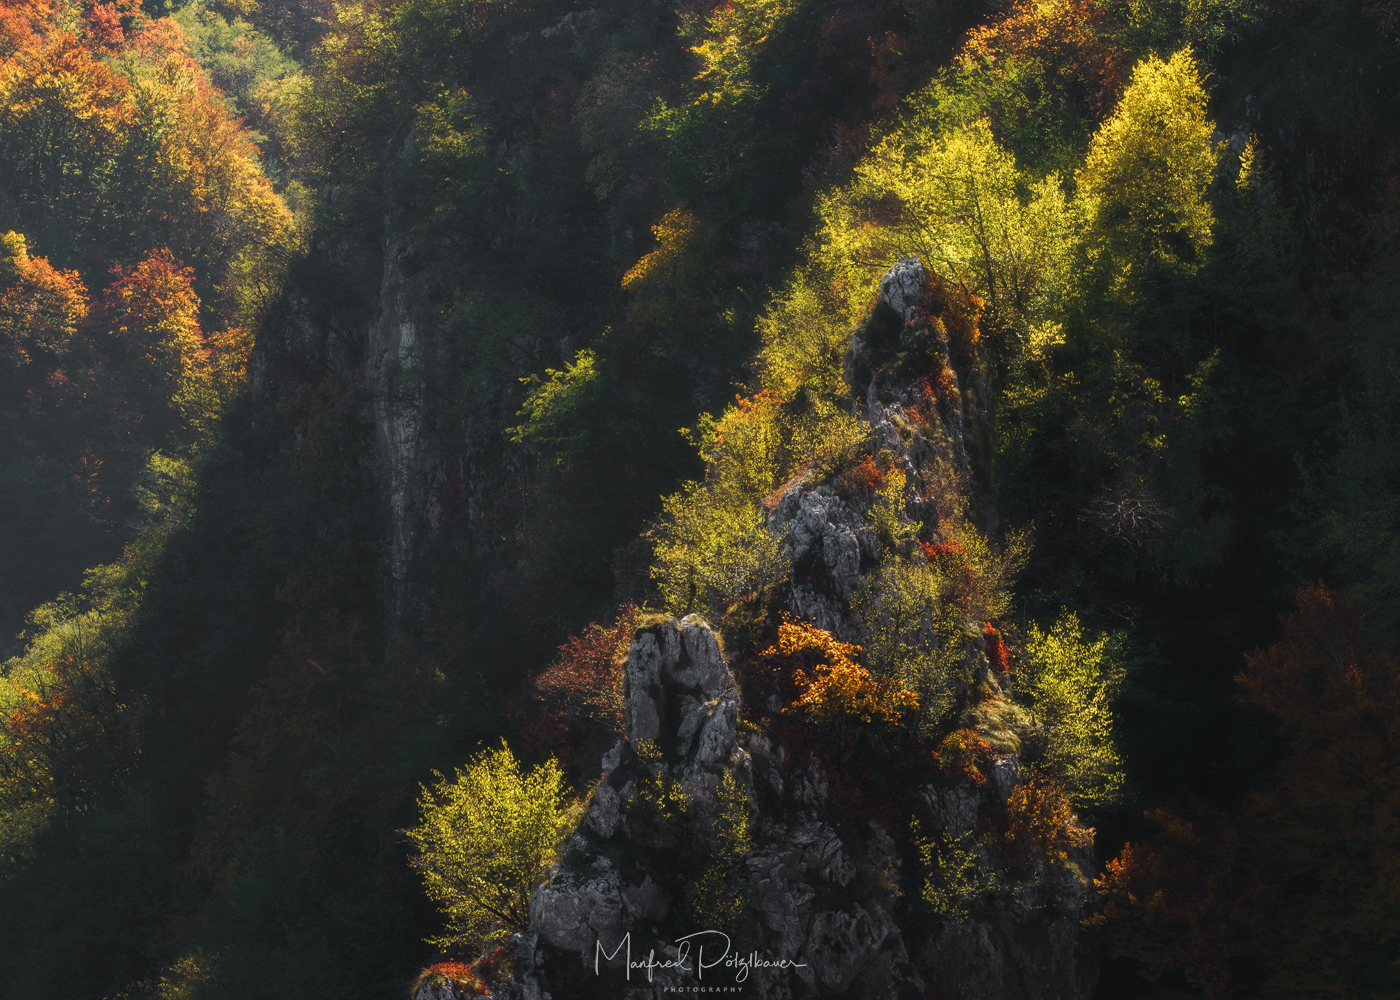 Plitvicer-Seen-20171015